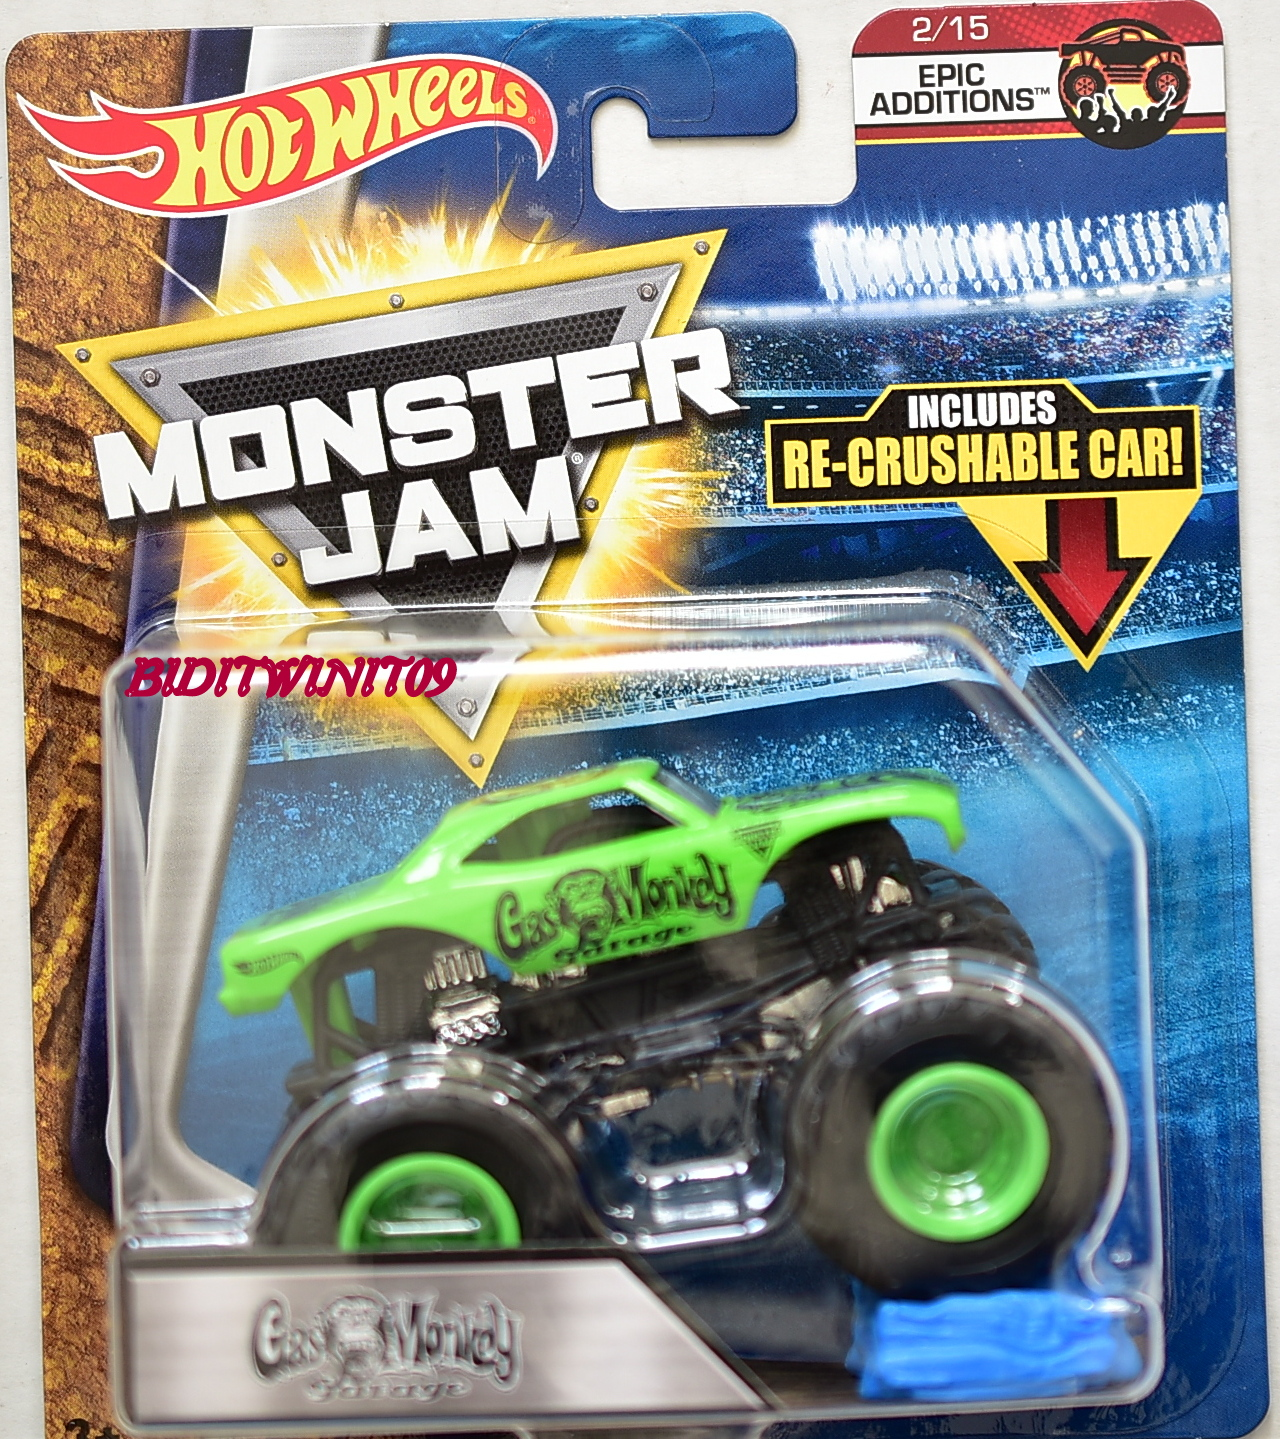 HOT WHEELS 2017 MONSTER JAM GAS MONKEY GARAGE EPIC ADDITIONS W/ RE-CRUSHABLE CAR